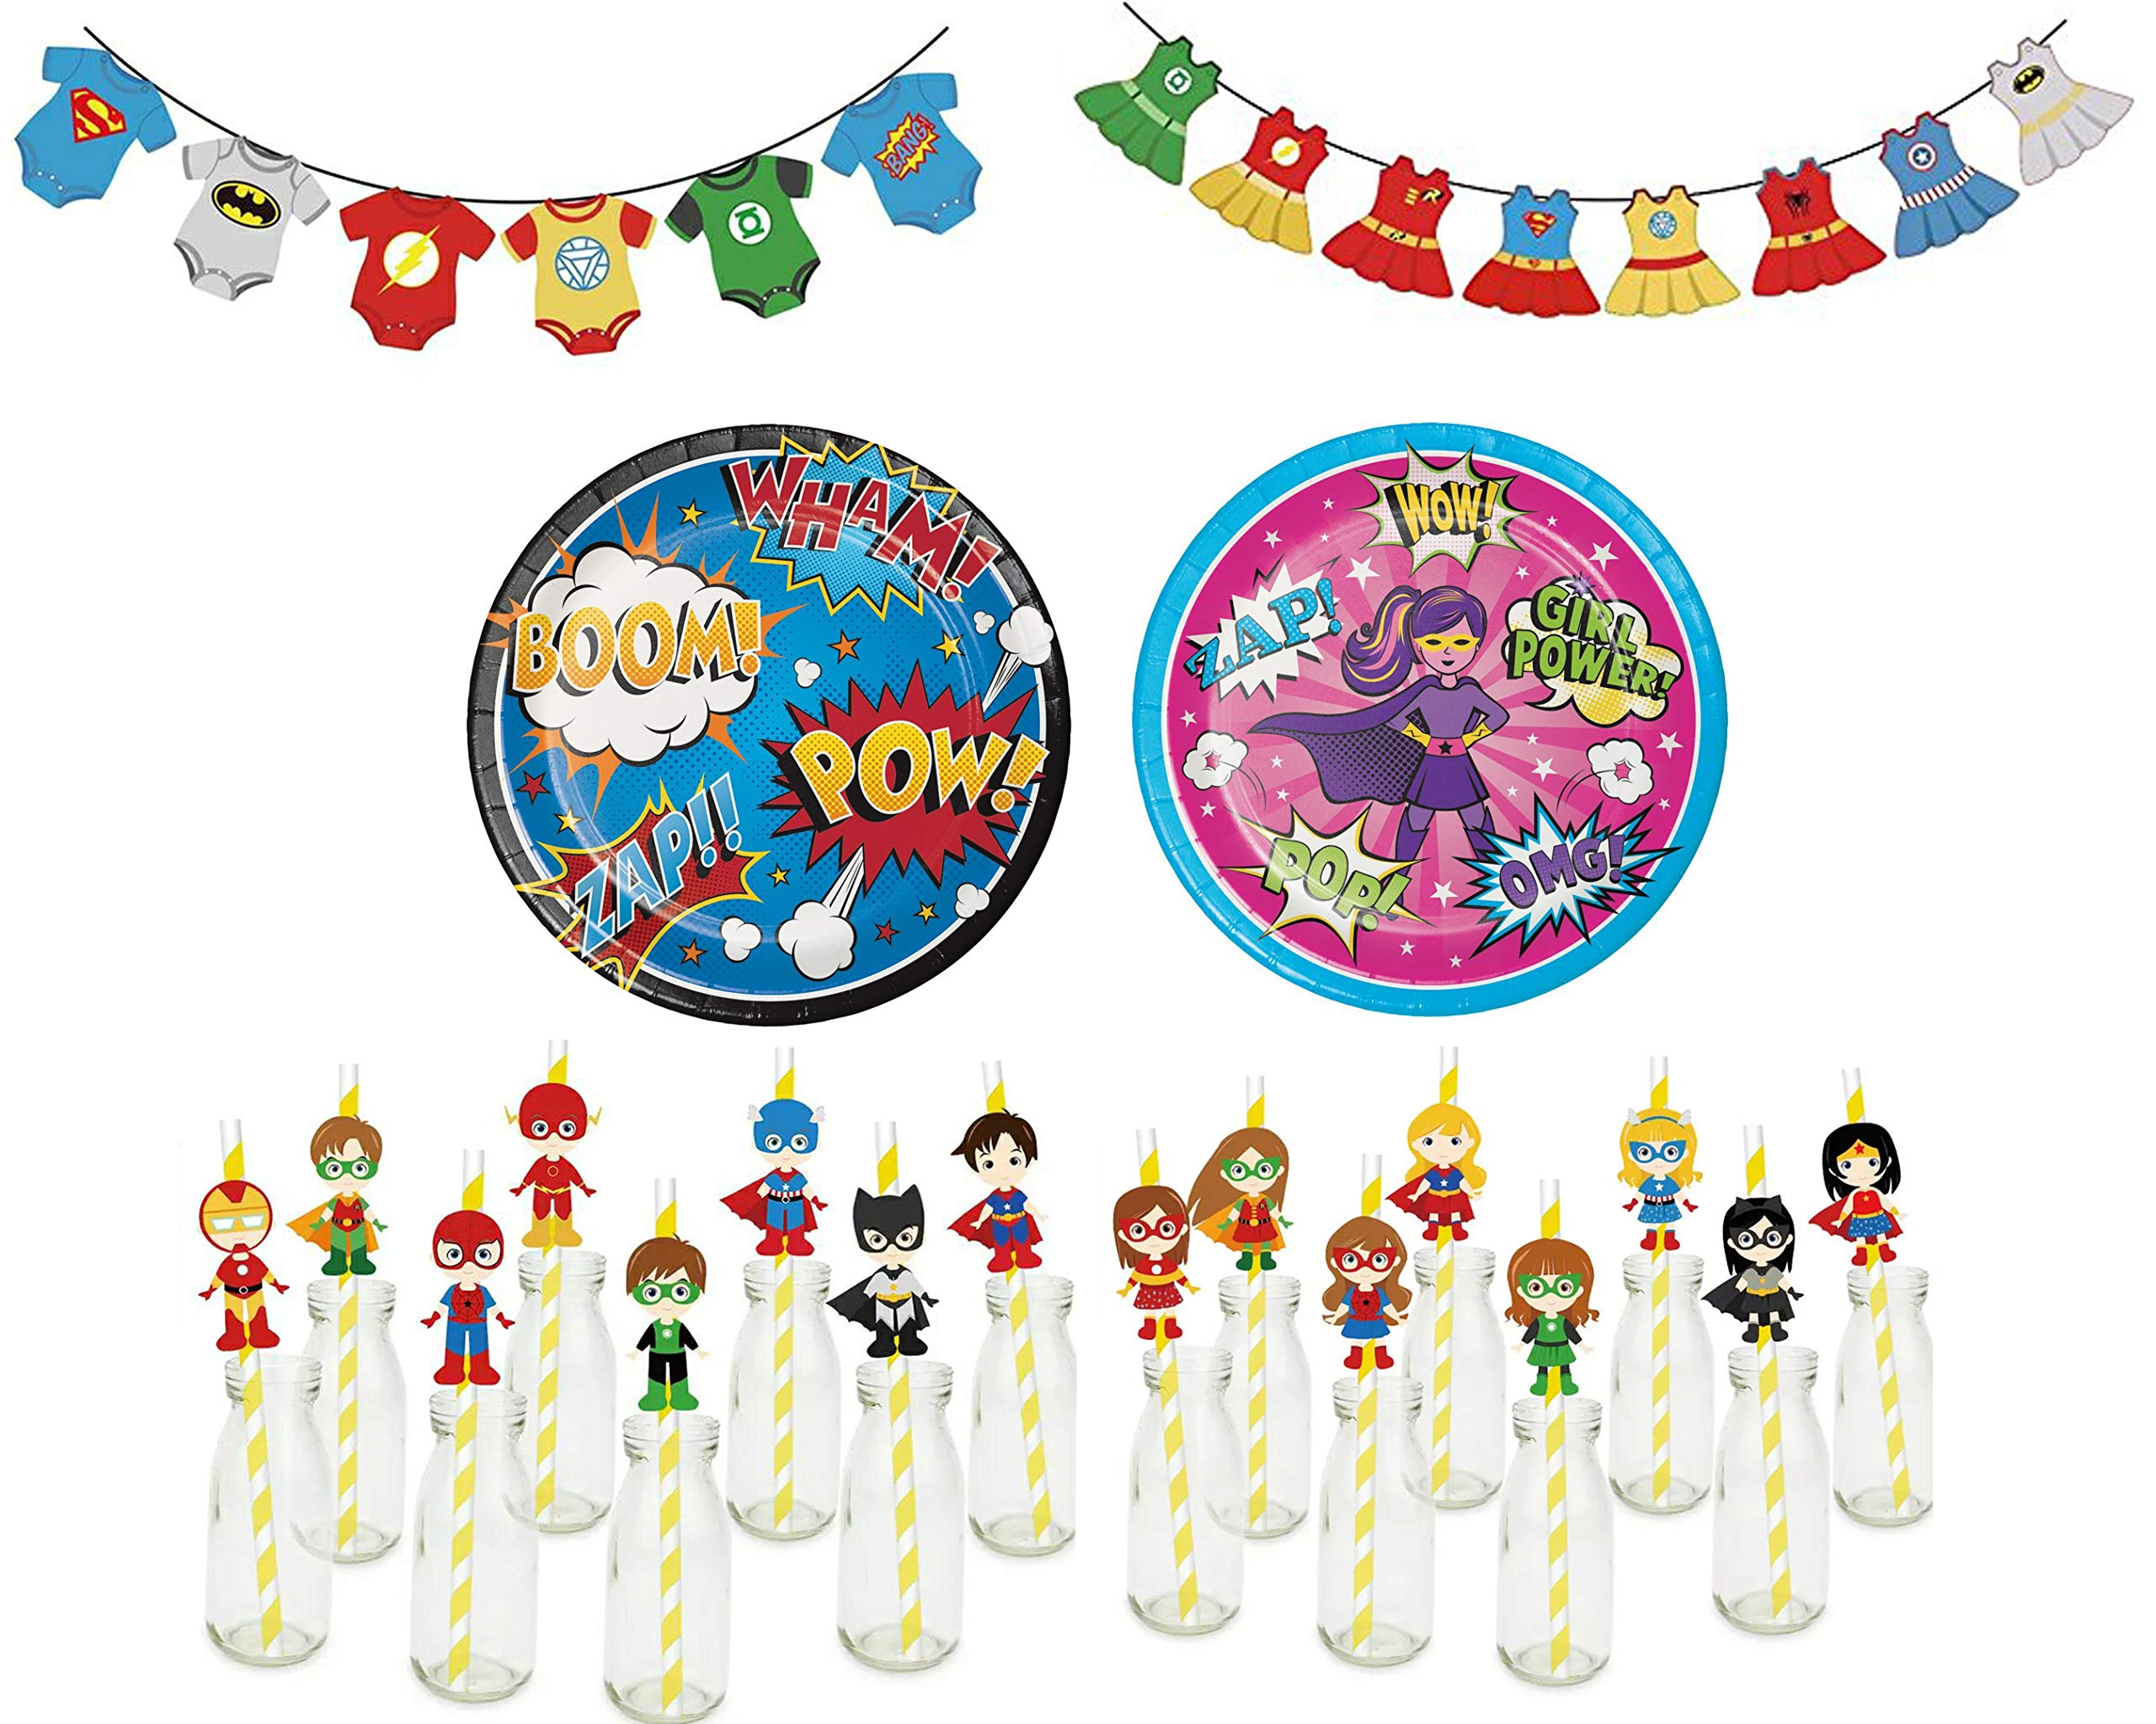 Superhero Gender Reveal Party Supplies Kit-16 Guests Party Banners, Plates, Napkins, Comic Book Inspired Straws, Blue and Pink Cups,Gold Silverware